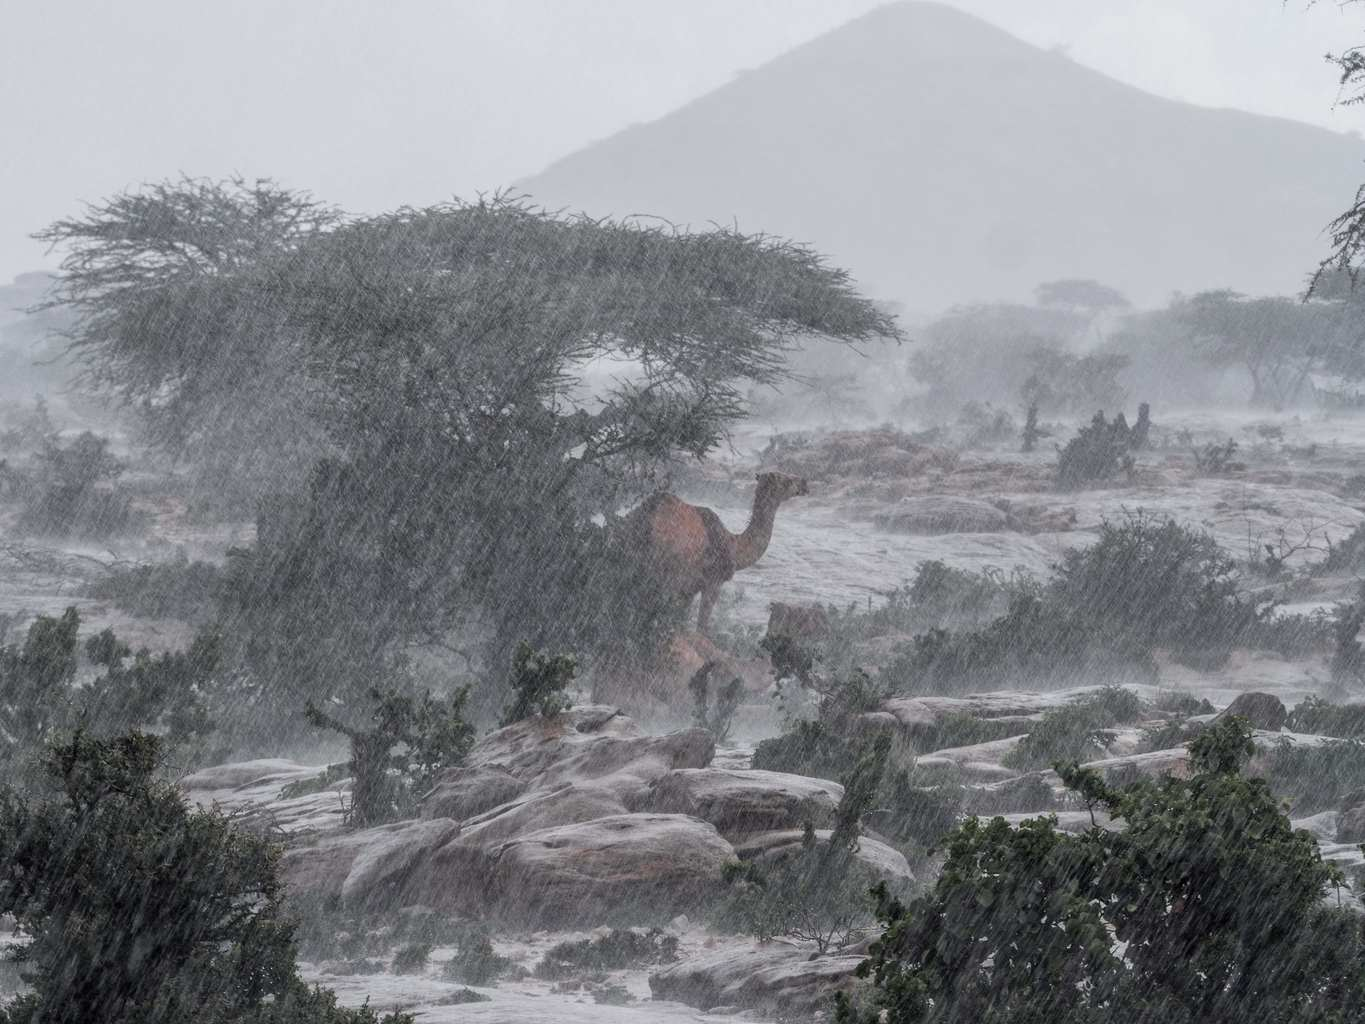 Camel in the Rain